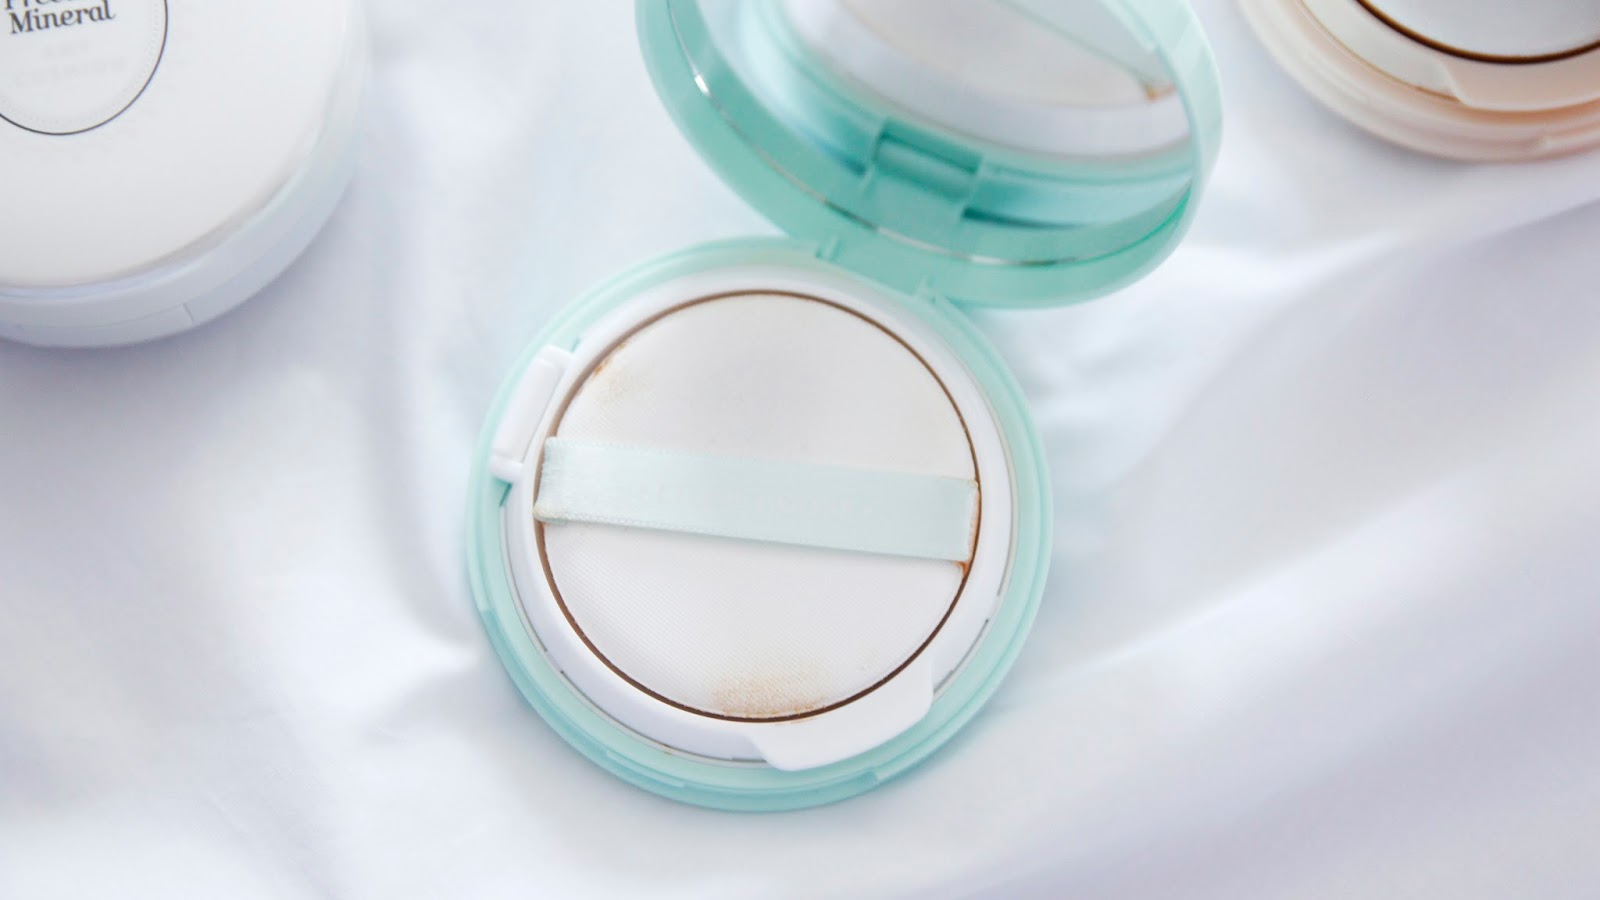 Etude House Ac Cleanup Mild Bb Cushion Review Liah Yoo Clean Up Natural Beige An Error Occurred